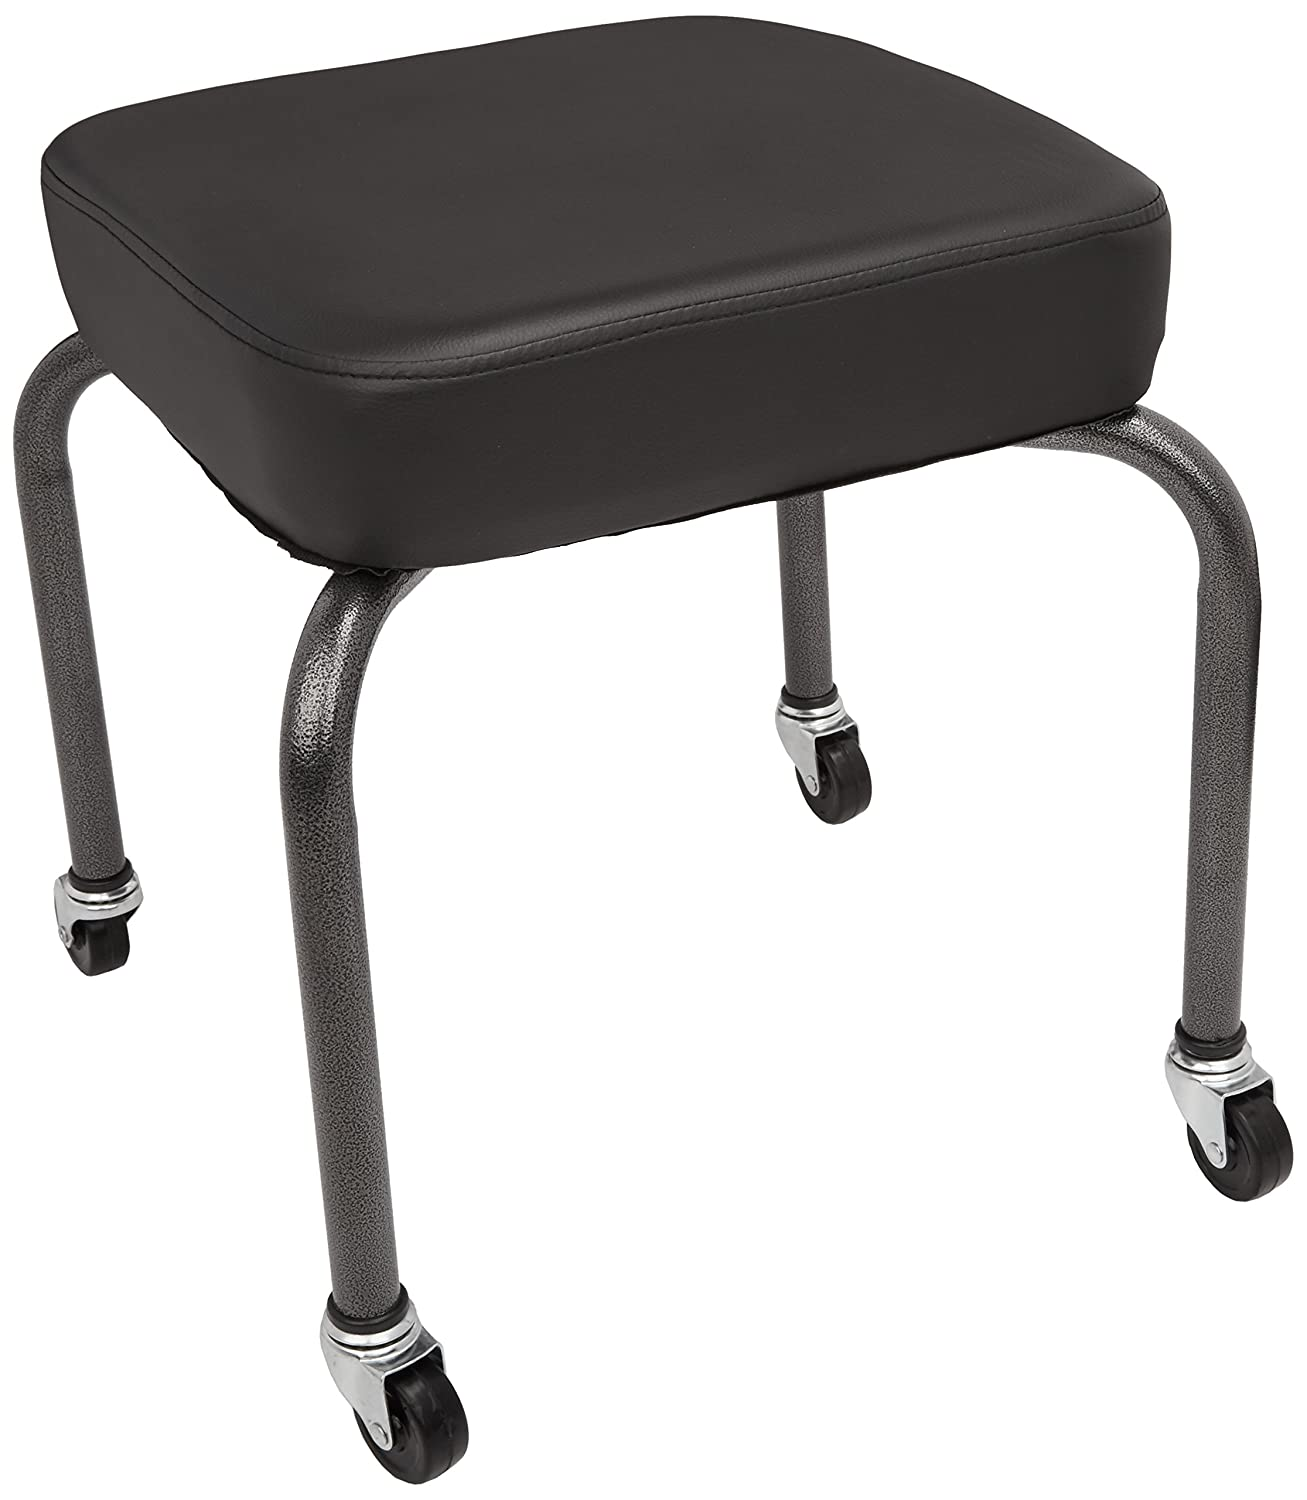 Sammons Preston Square Therapy Stool, Black, Cushion Seat for Office, Clinical, or Home Use, Comfortable Seat Design for Back, Spine, Lower and Upper Lumbar Support, Foam Padding for Support 081505395